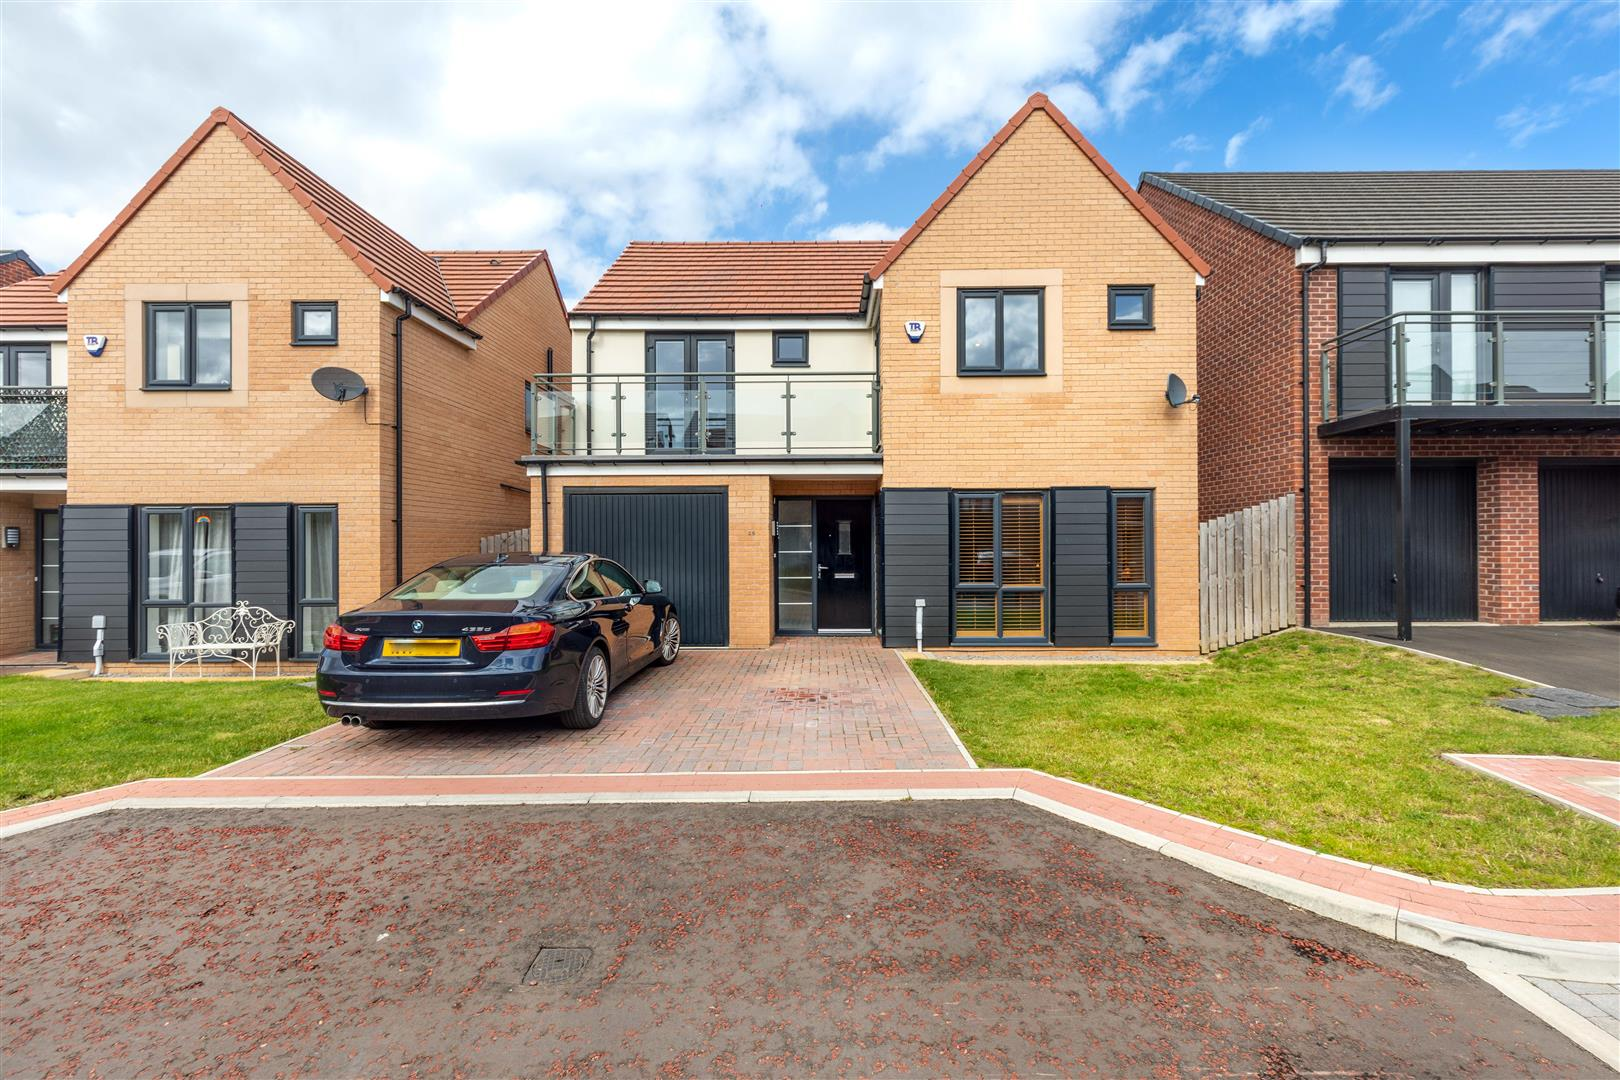 4 bed detached house for sale in Newcastle Upon Tyne, NE13 9DJ, NE13